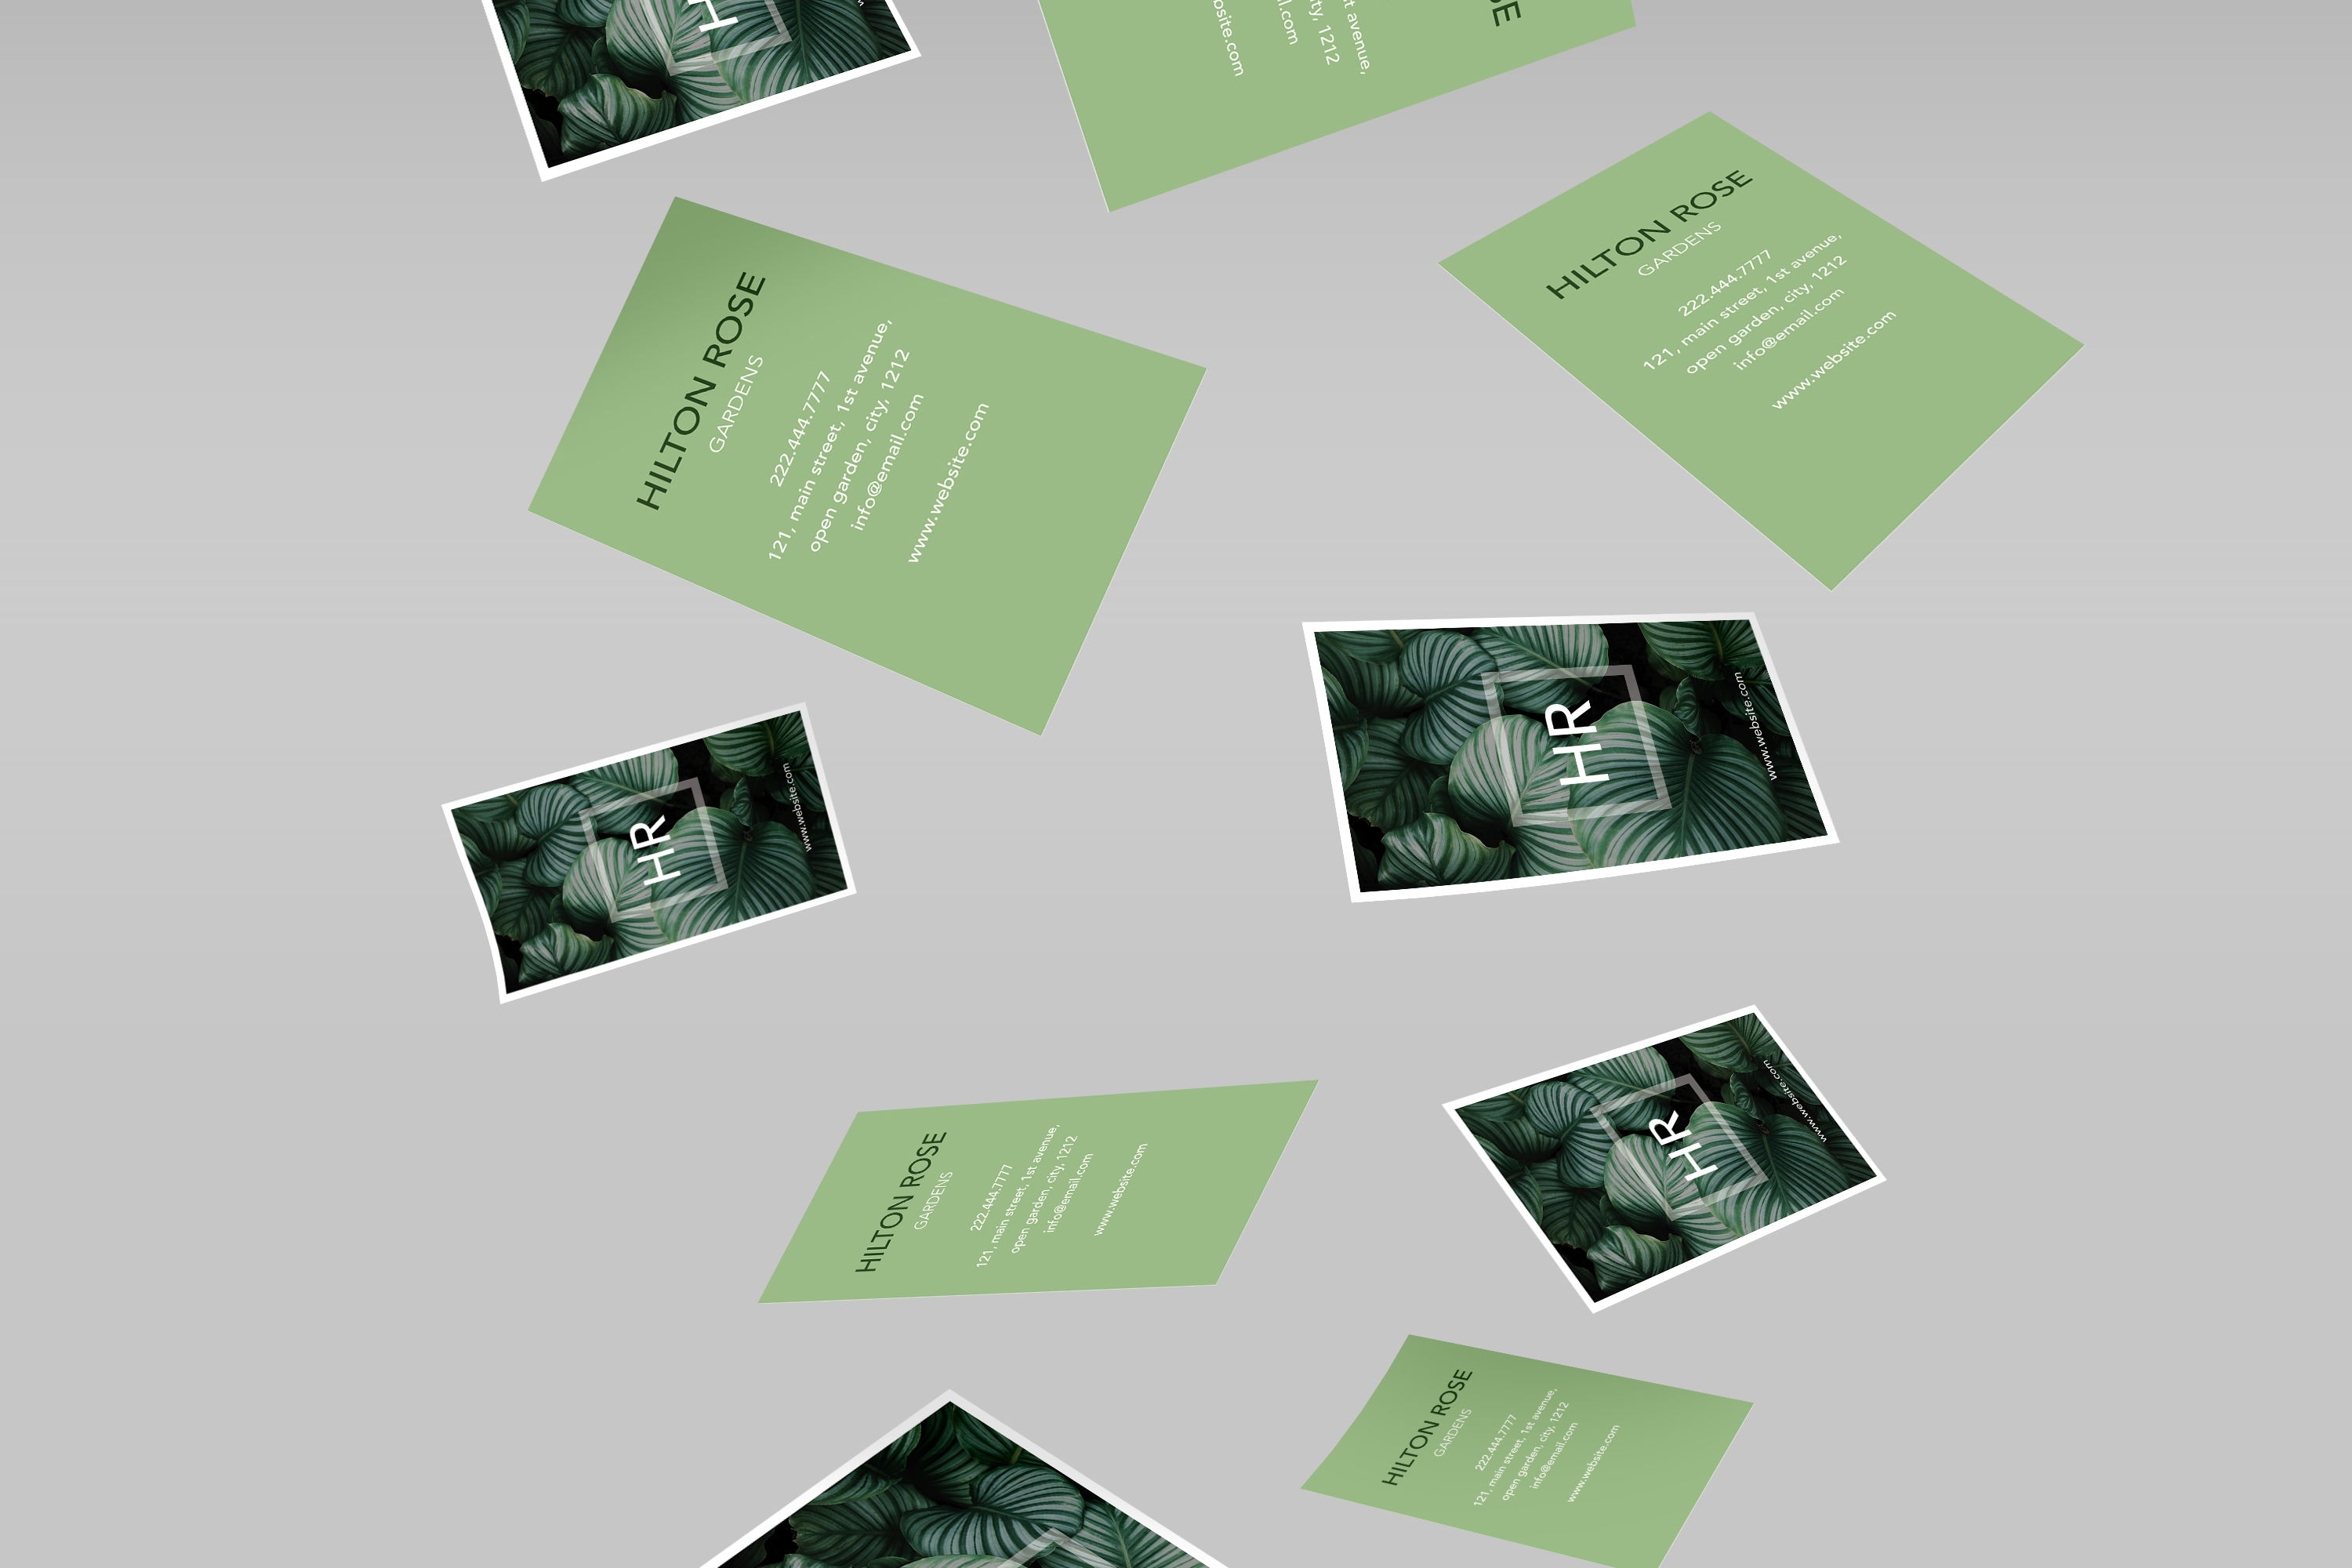 Green nature classy business card by Cr | Design Bundles